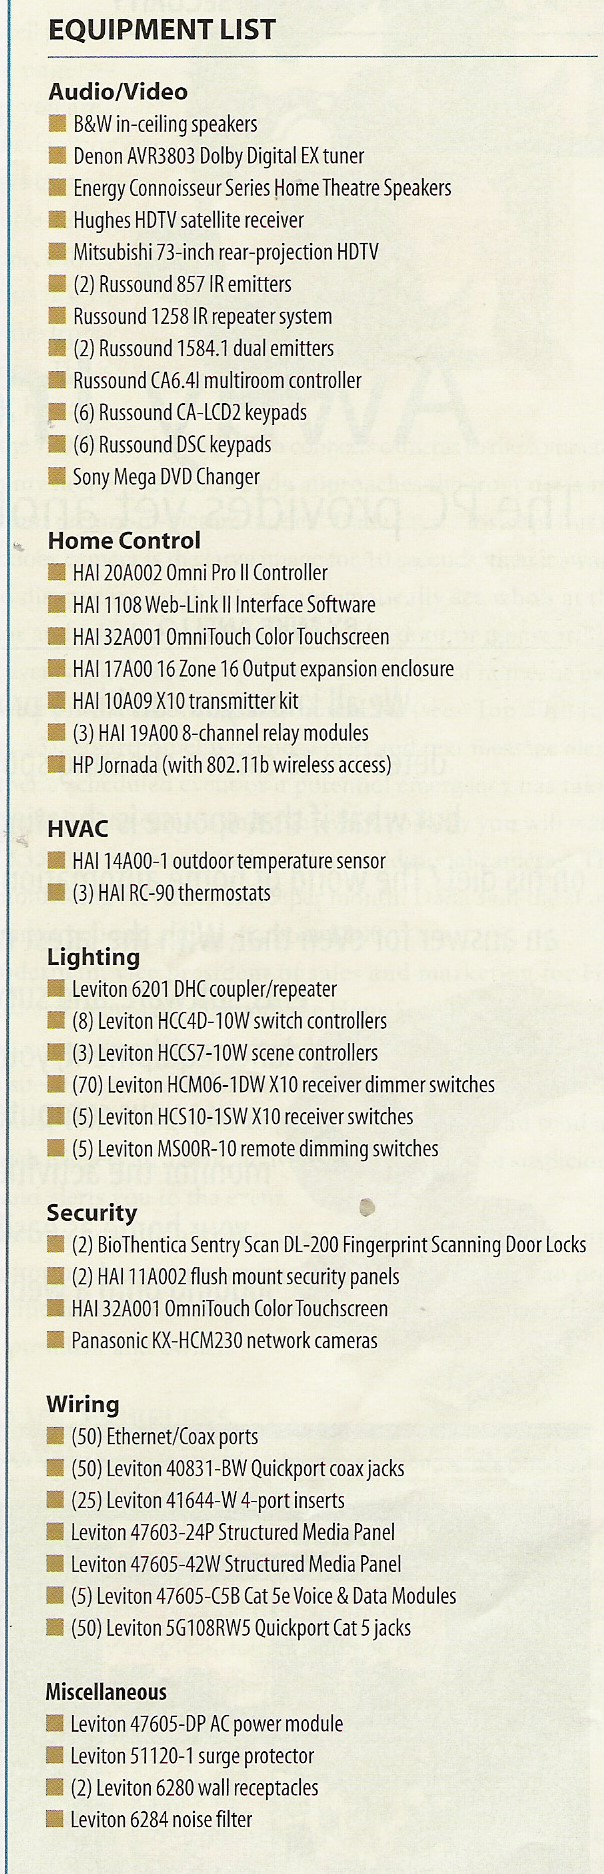 Pin By A Joe Petrucce On Home Automation Network Home Automation Satellite Receiver Dolby Digital